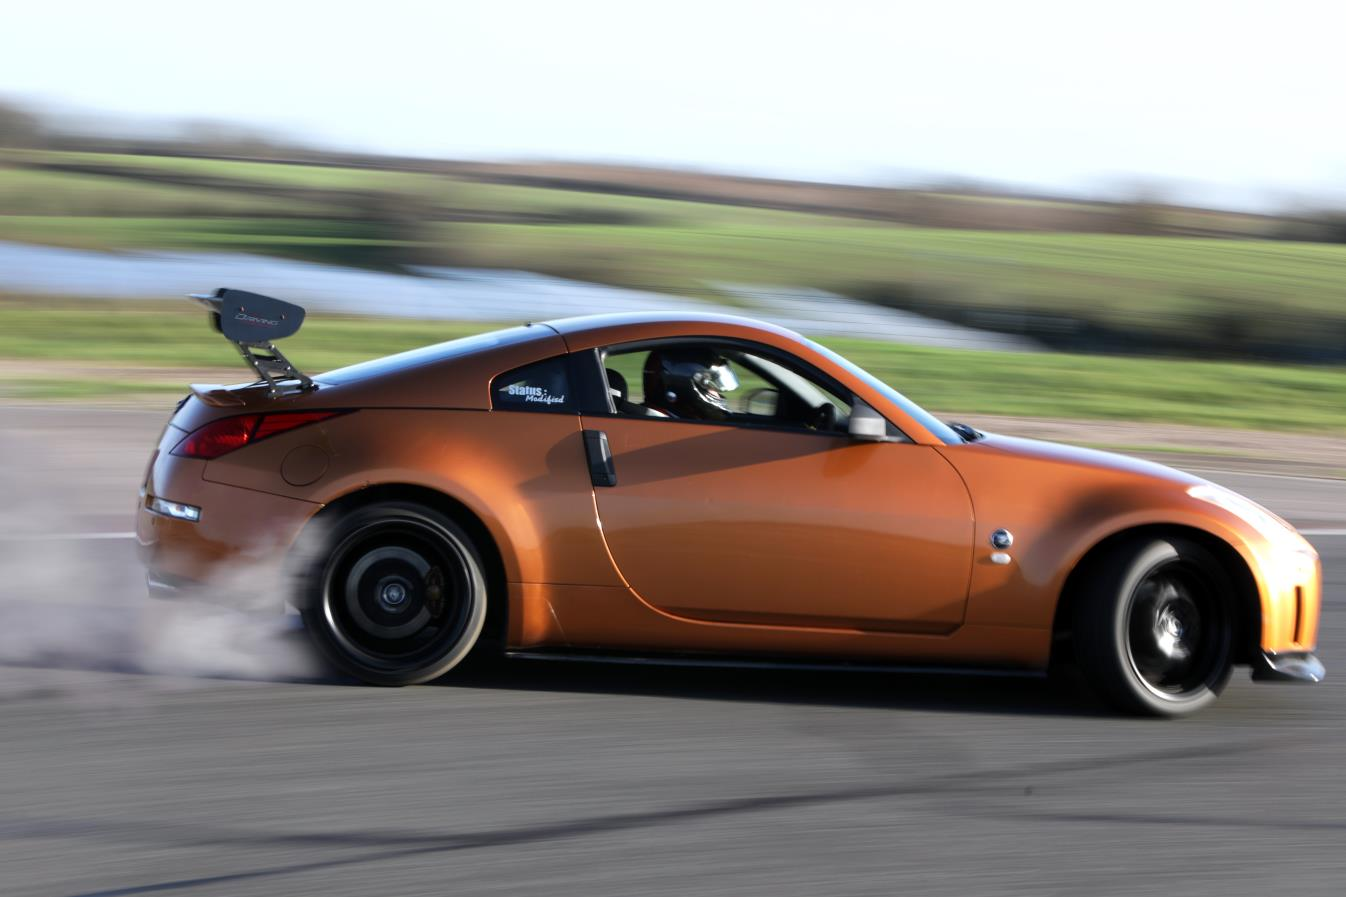 Drifting races ahead as fastest growing driving experience